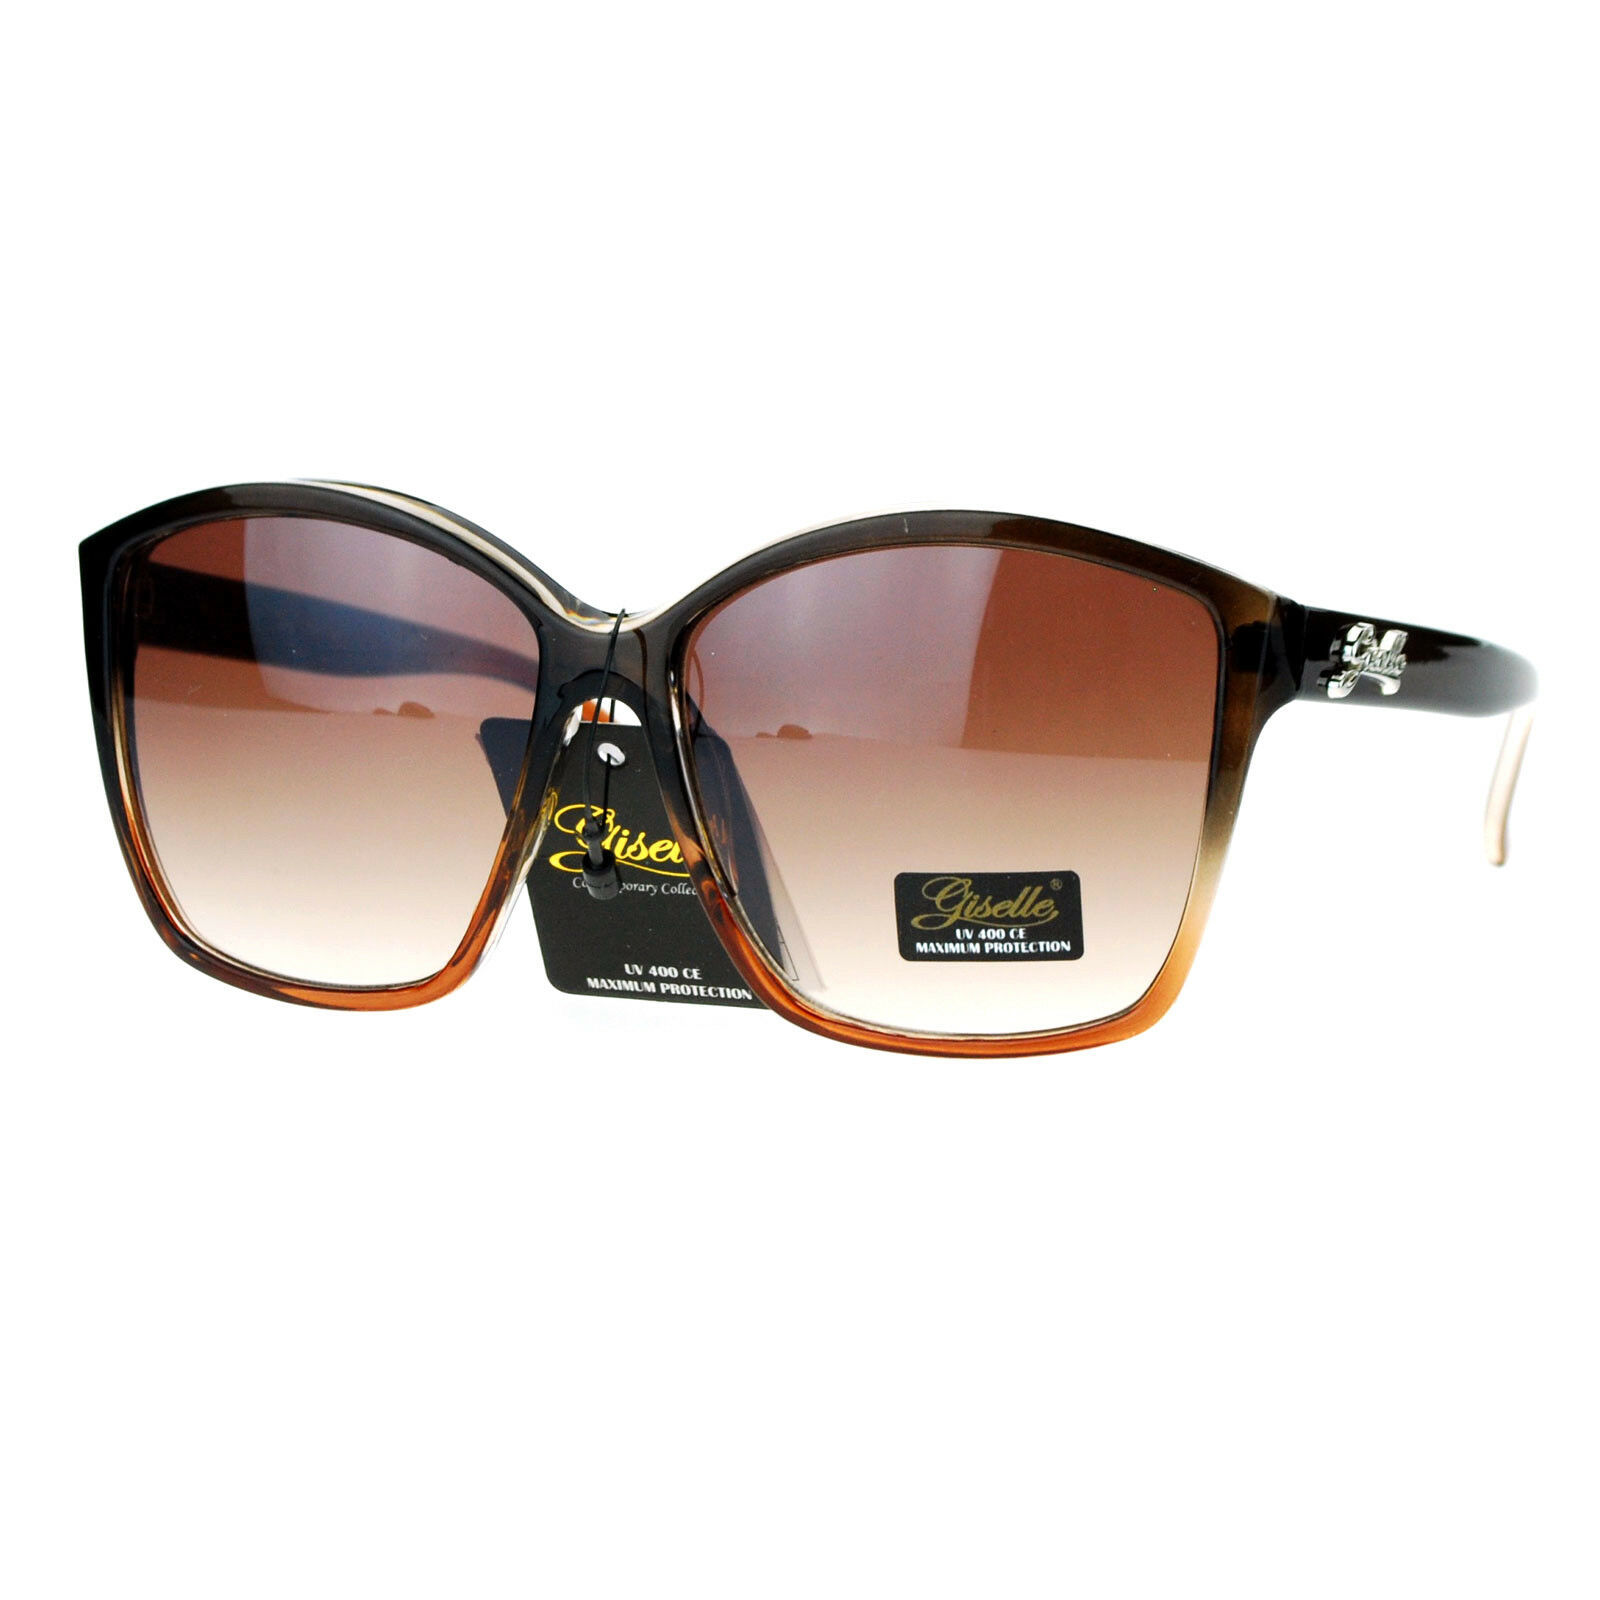 Womens Sunglasses Oversized Unique Round Top Square Frame UV 400